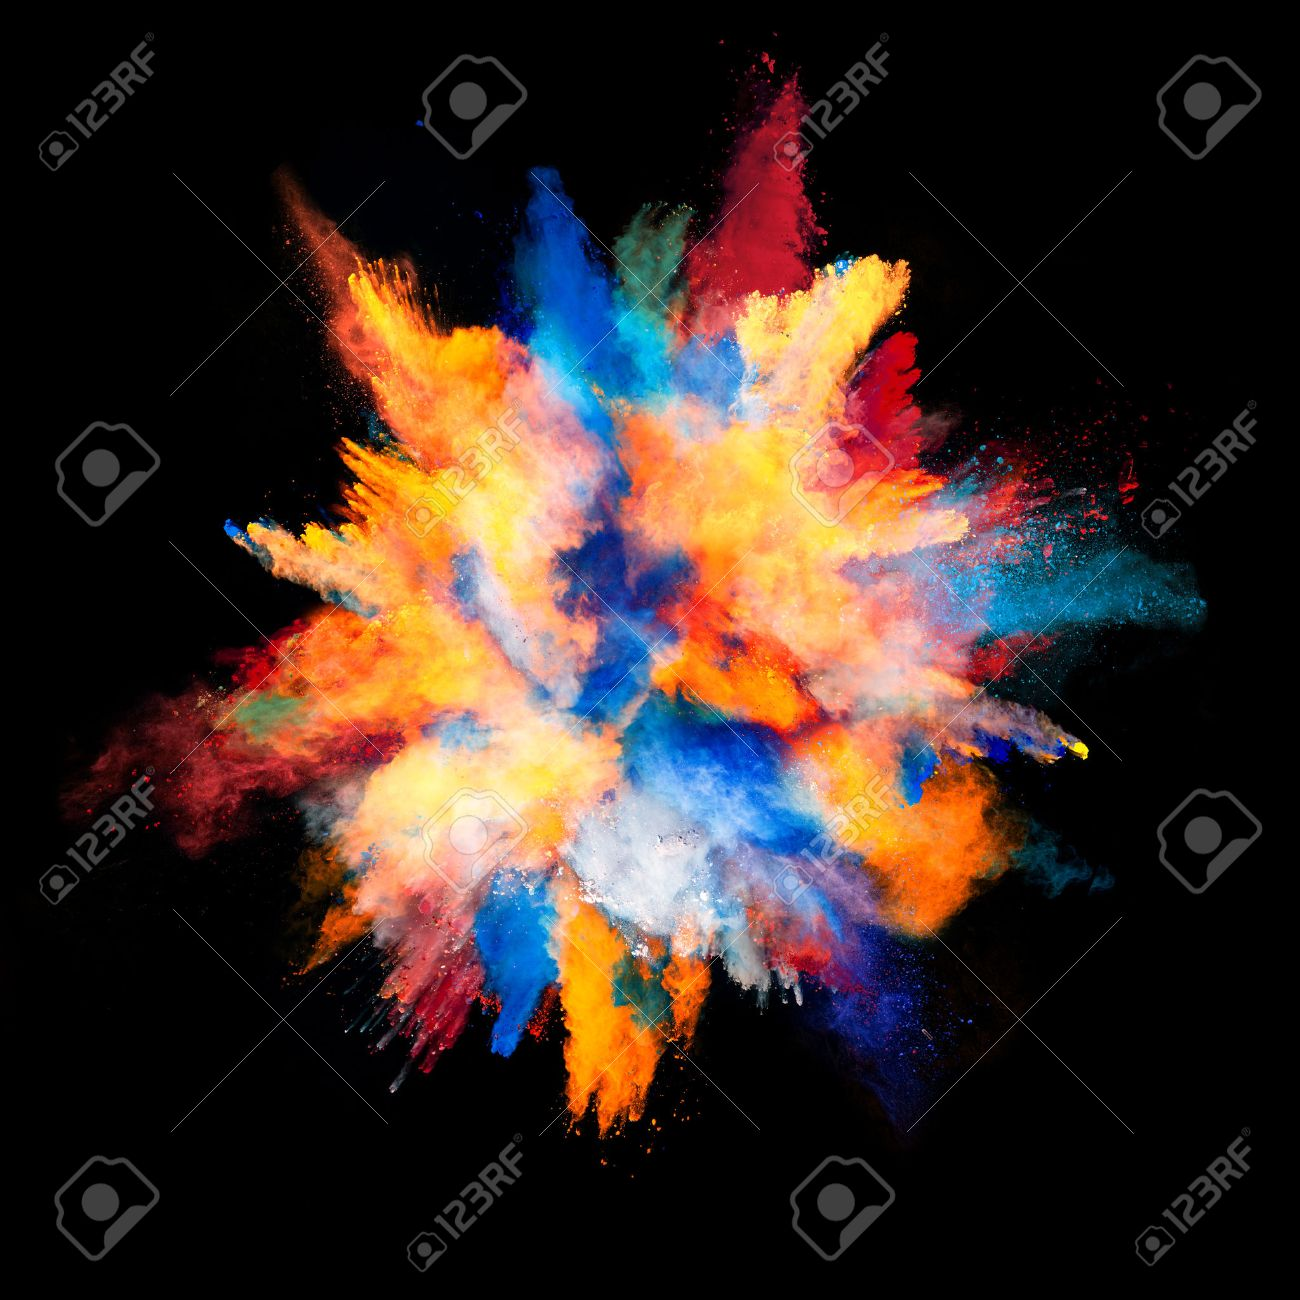 Explosion of colored powder, isolated on black background - 51336540